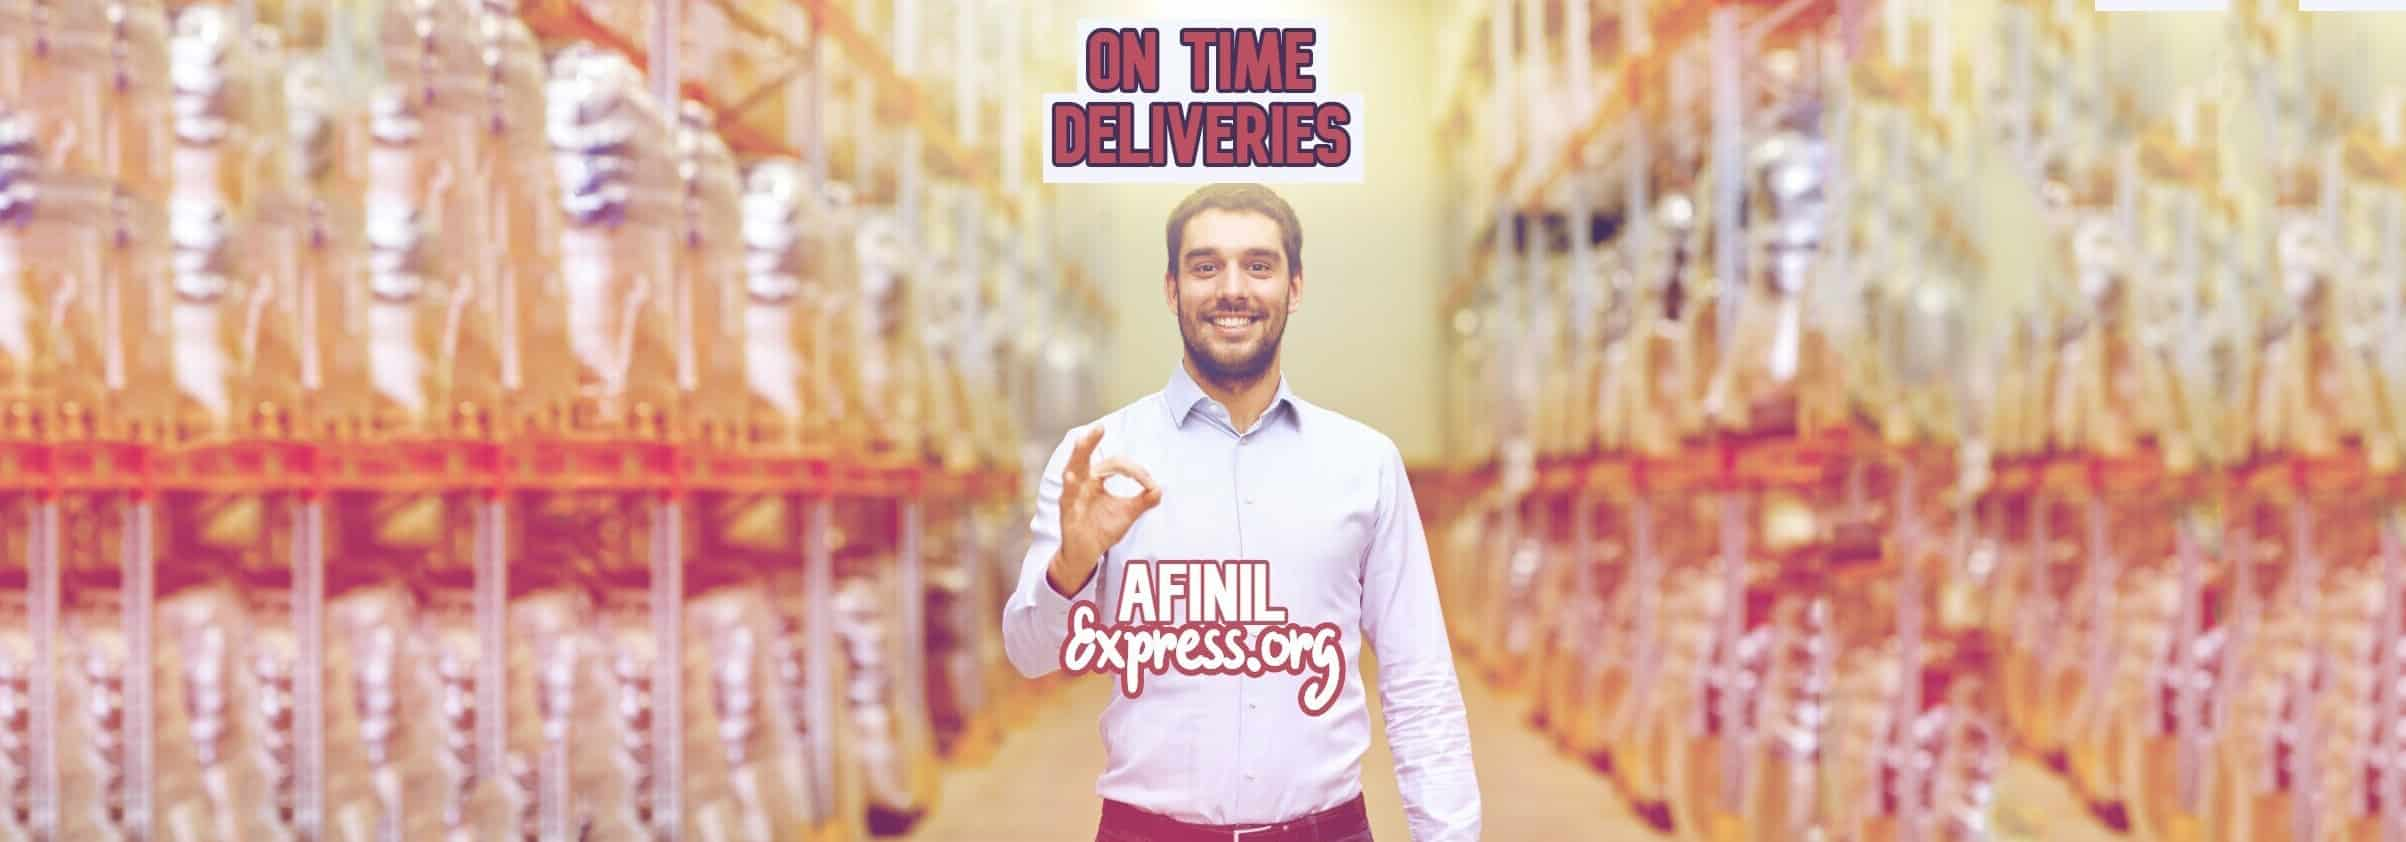 on time deliveries, afinil express